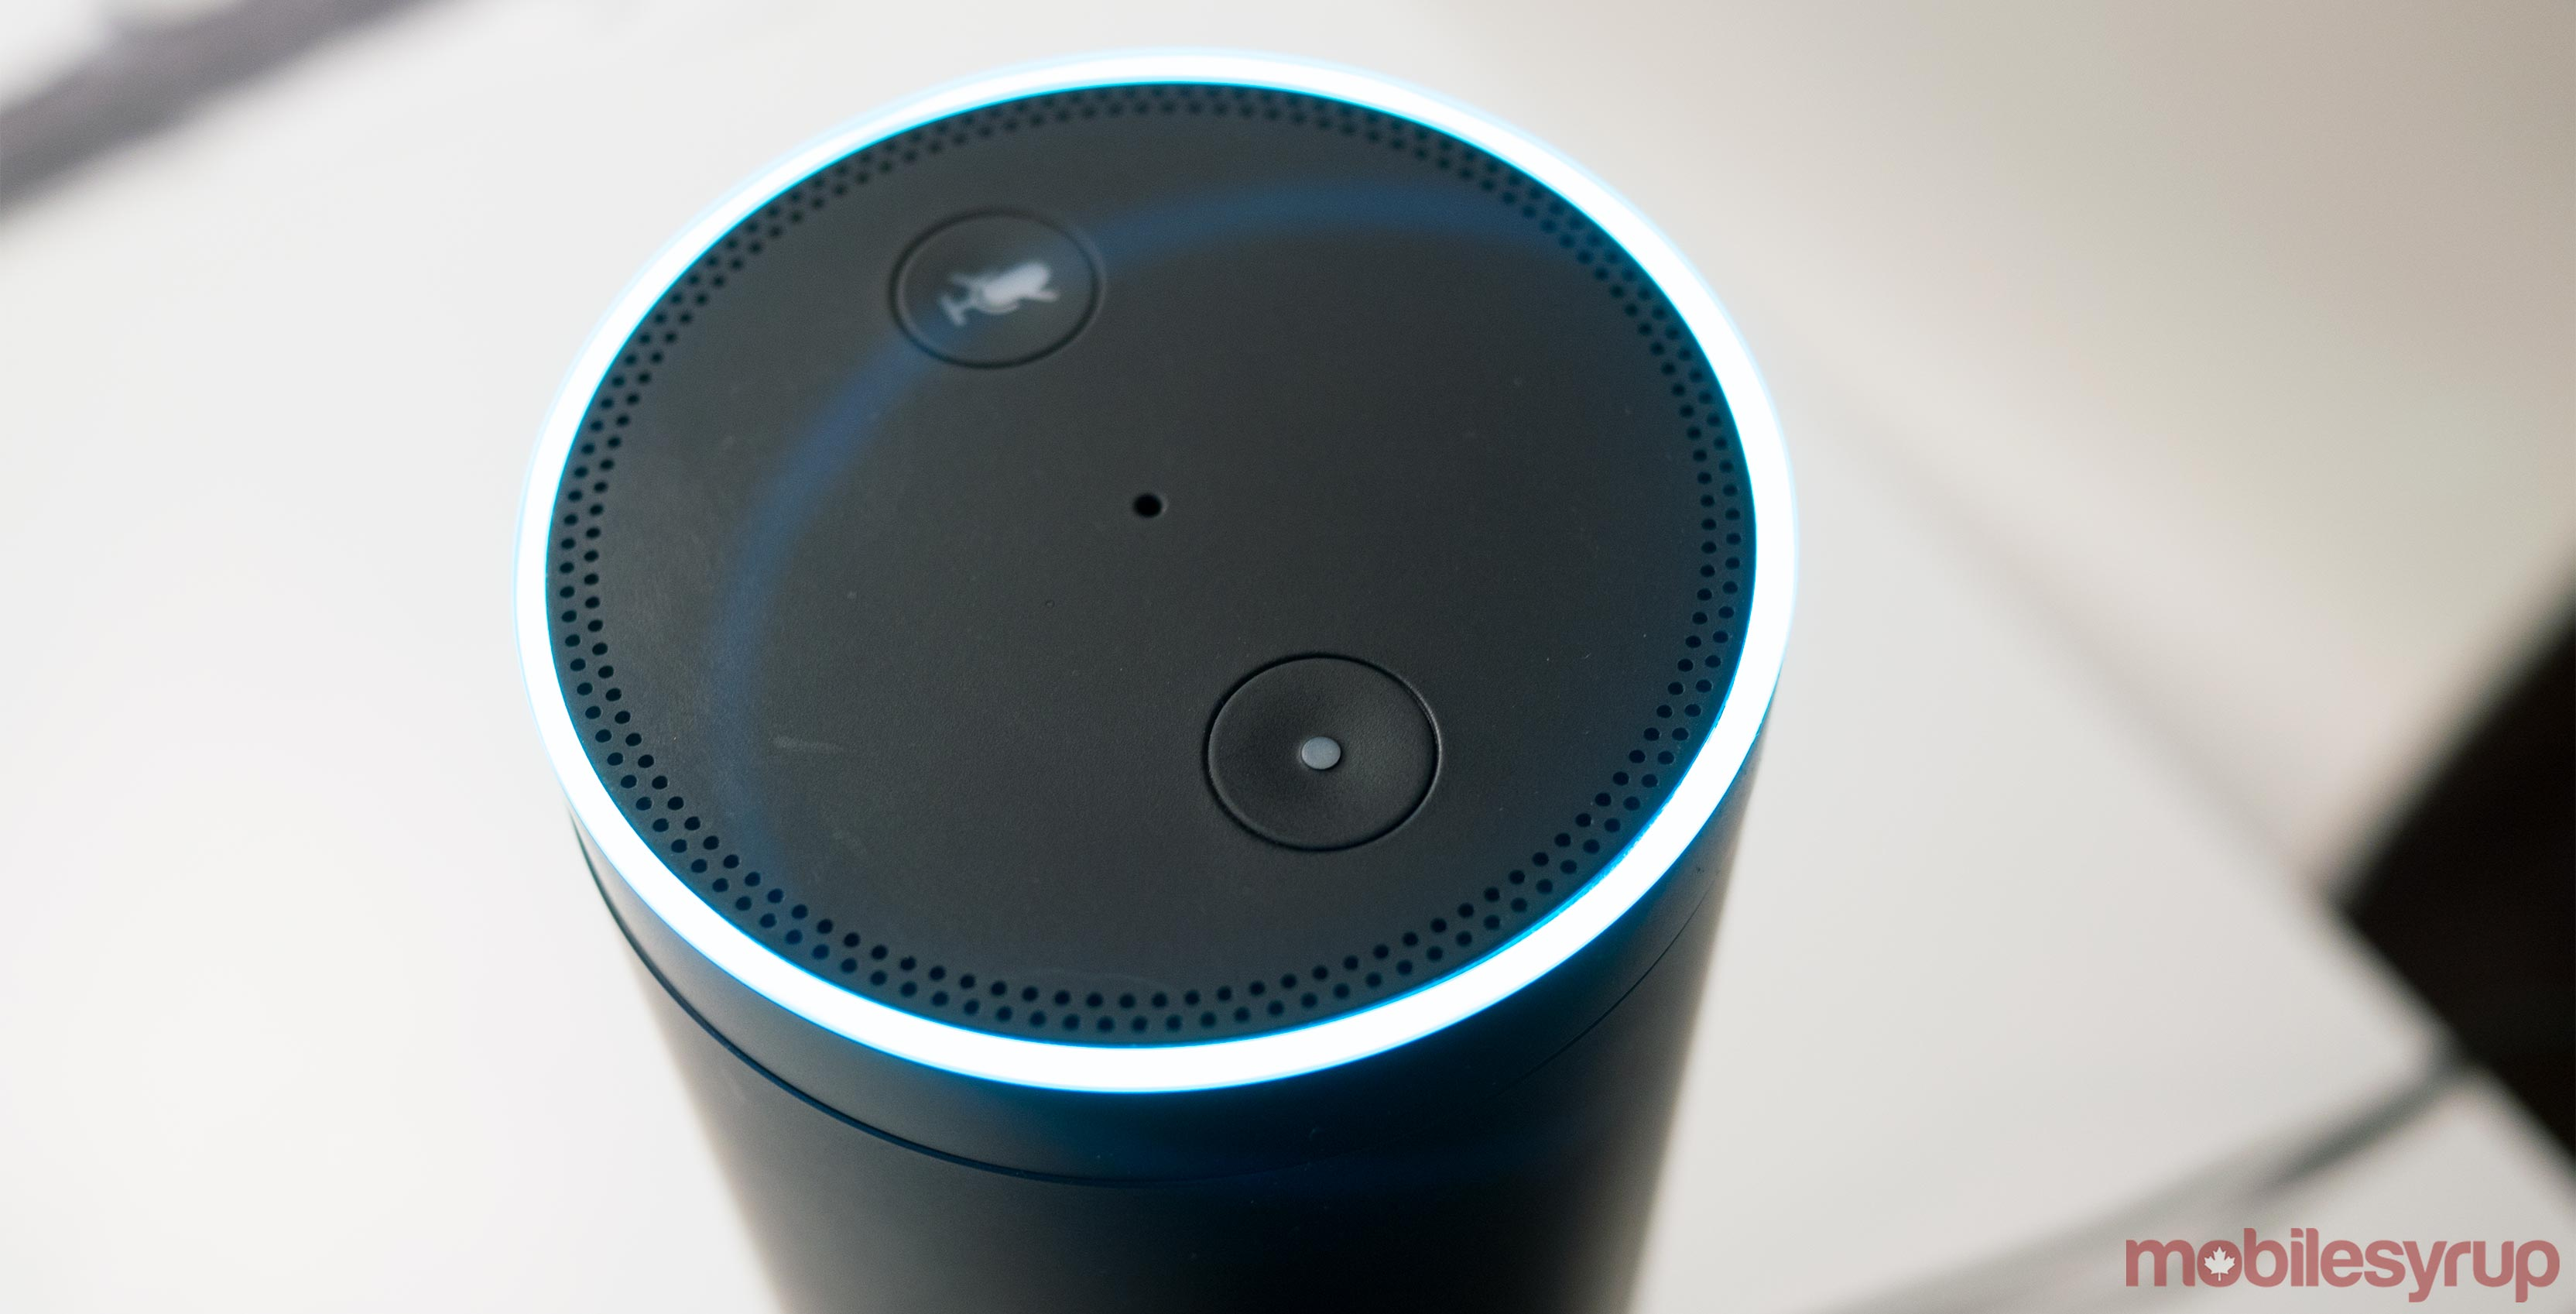 Amazon Alexa on a Amazon Echo